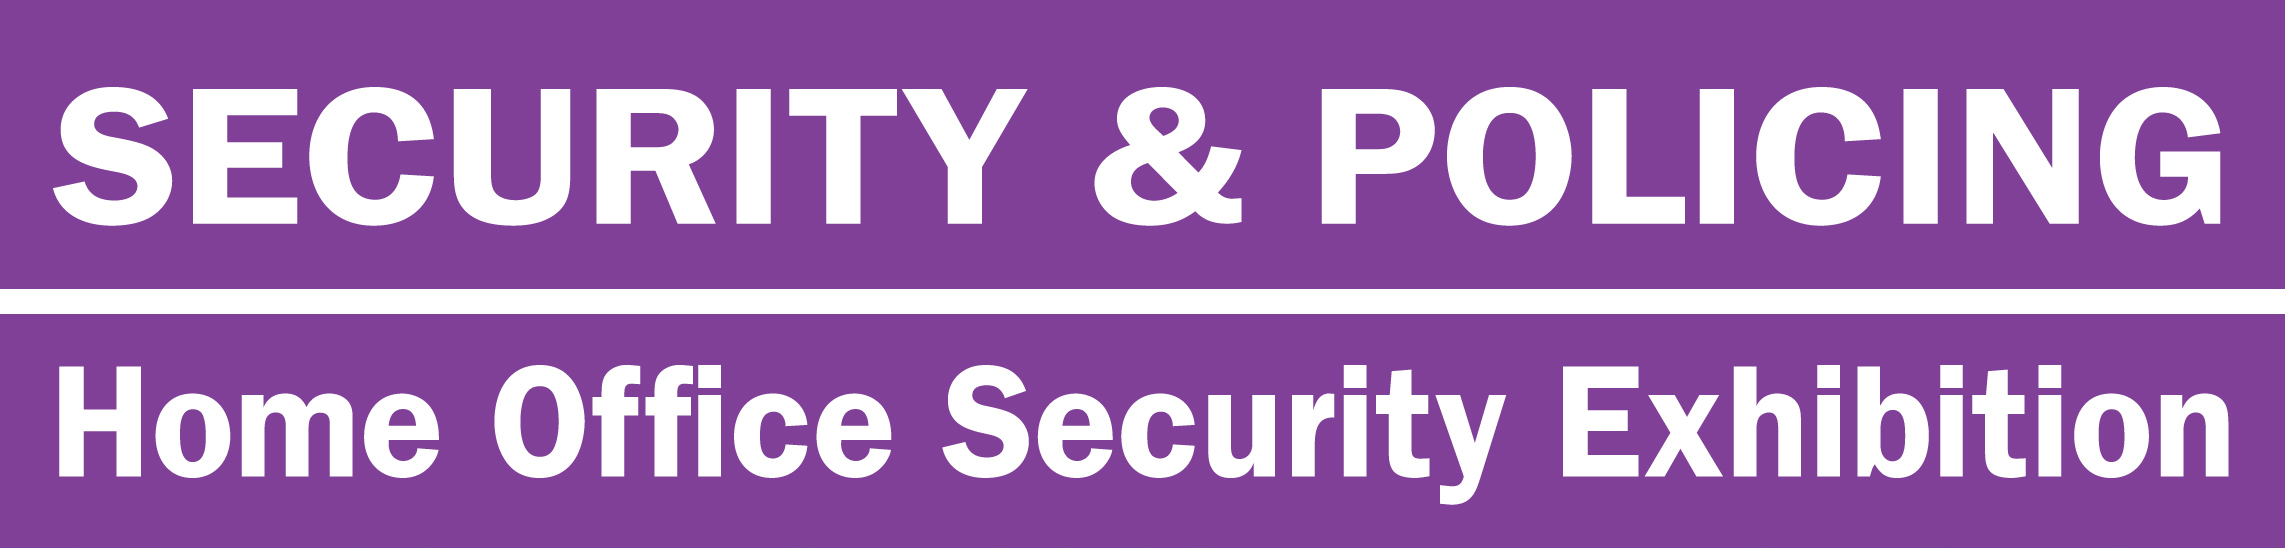 IPS expositor en Security and Policing 2017